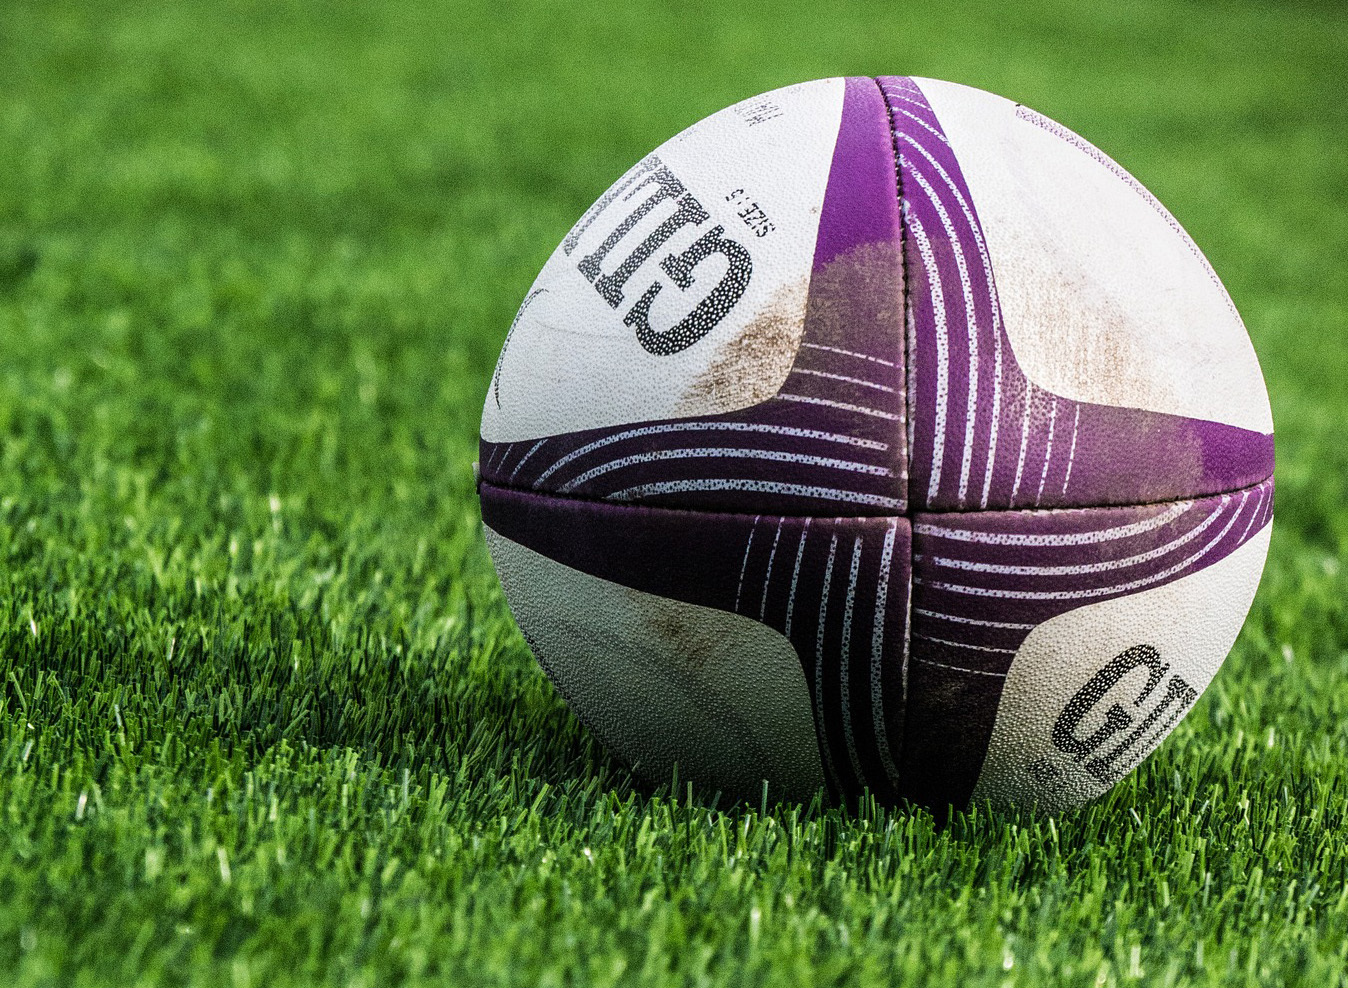 RUGBY: Fairford take positives ahead of Cirencester clash